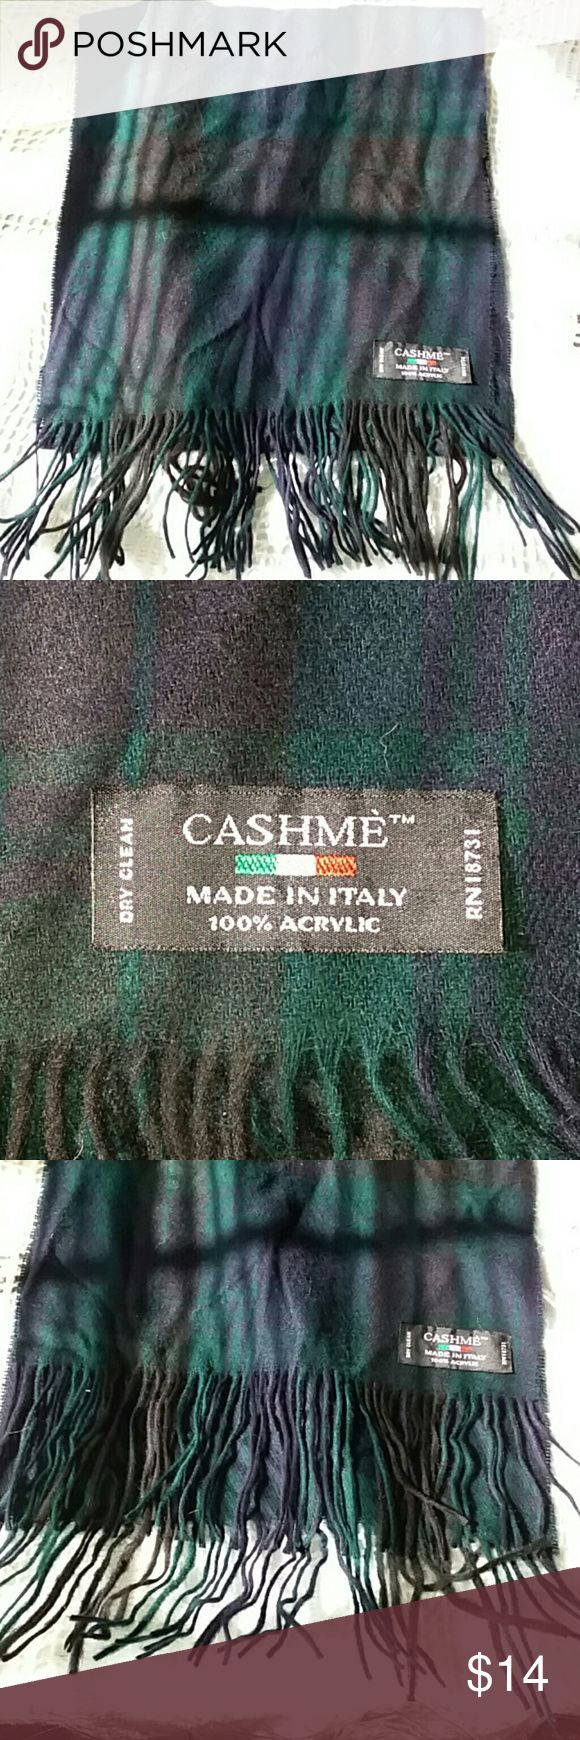 """Cute Plaid Green/Blue Cashmè Acrylic Scarf Women's Cashmè Geoffrey Beene Evergreen and Navy Blue scarf tassle  11""""× 52""""  Made of 100% Acrylic  Made in Italy  Fast shipper❣ Please make sure to check out my other listings to be able to bundle and save more💰 Cashmé Accessories Scarves & Wraps"""